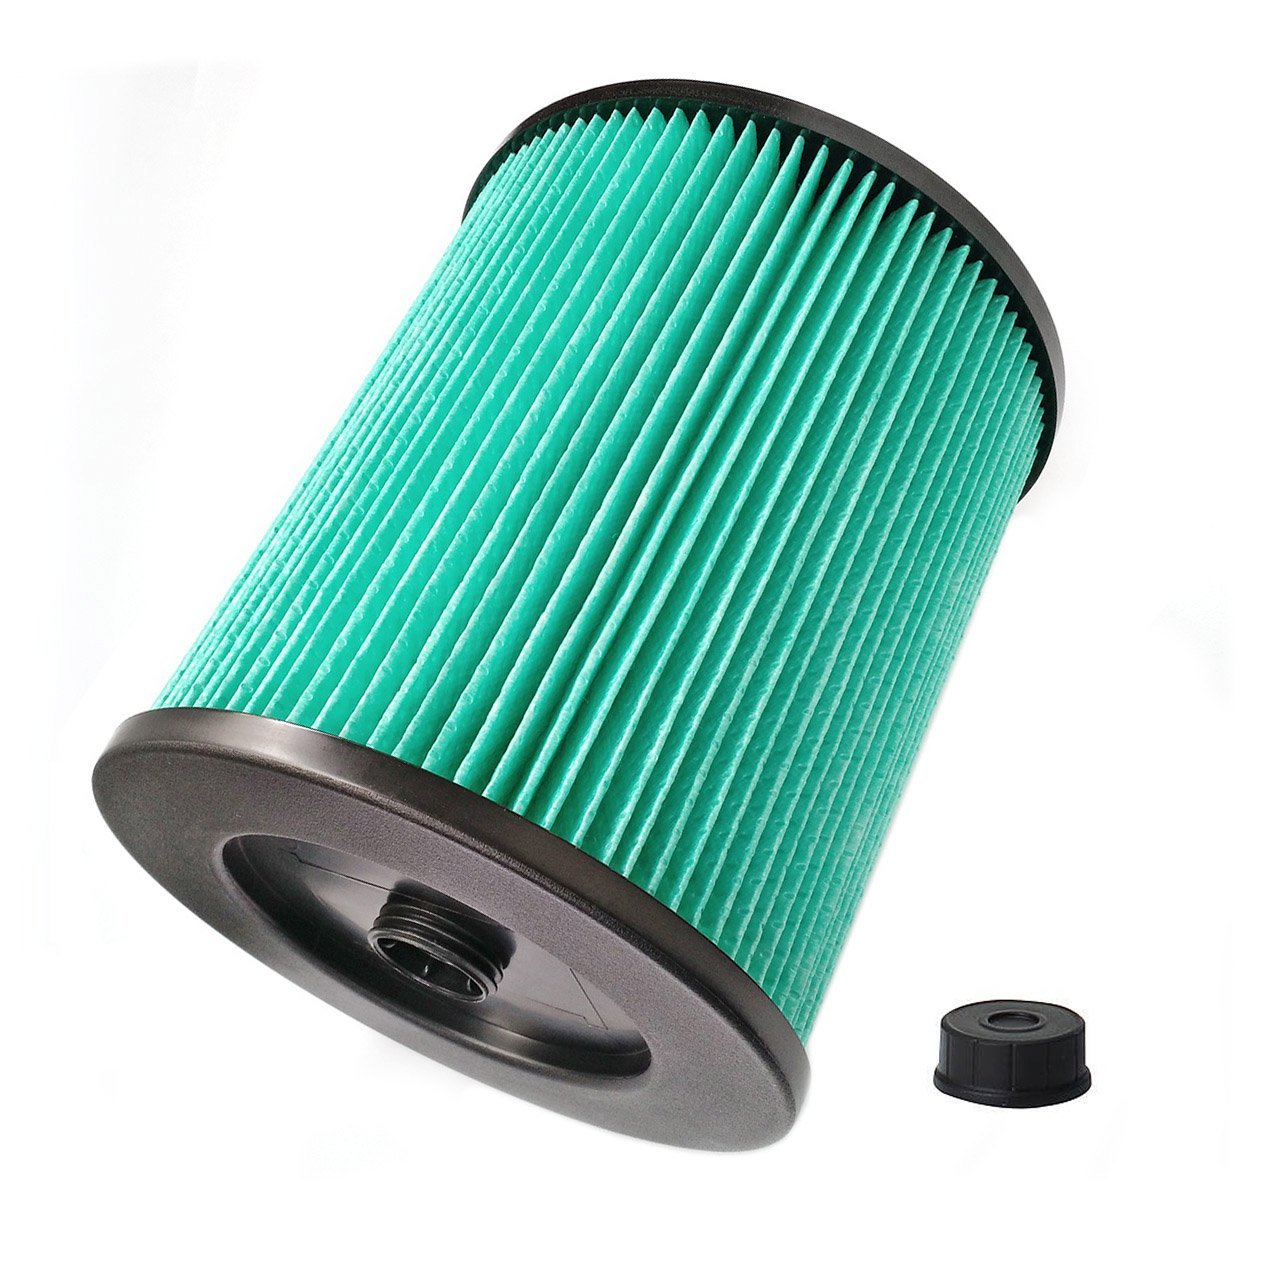 Seelong Replacement Filter for Craftsman 9-17912 Wet Dry Vacuum Filter with High Efficiency Particle Air by Seelong